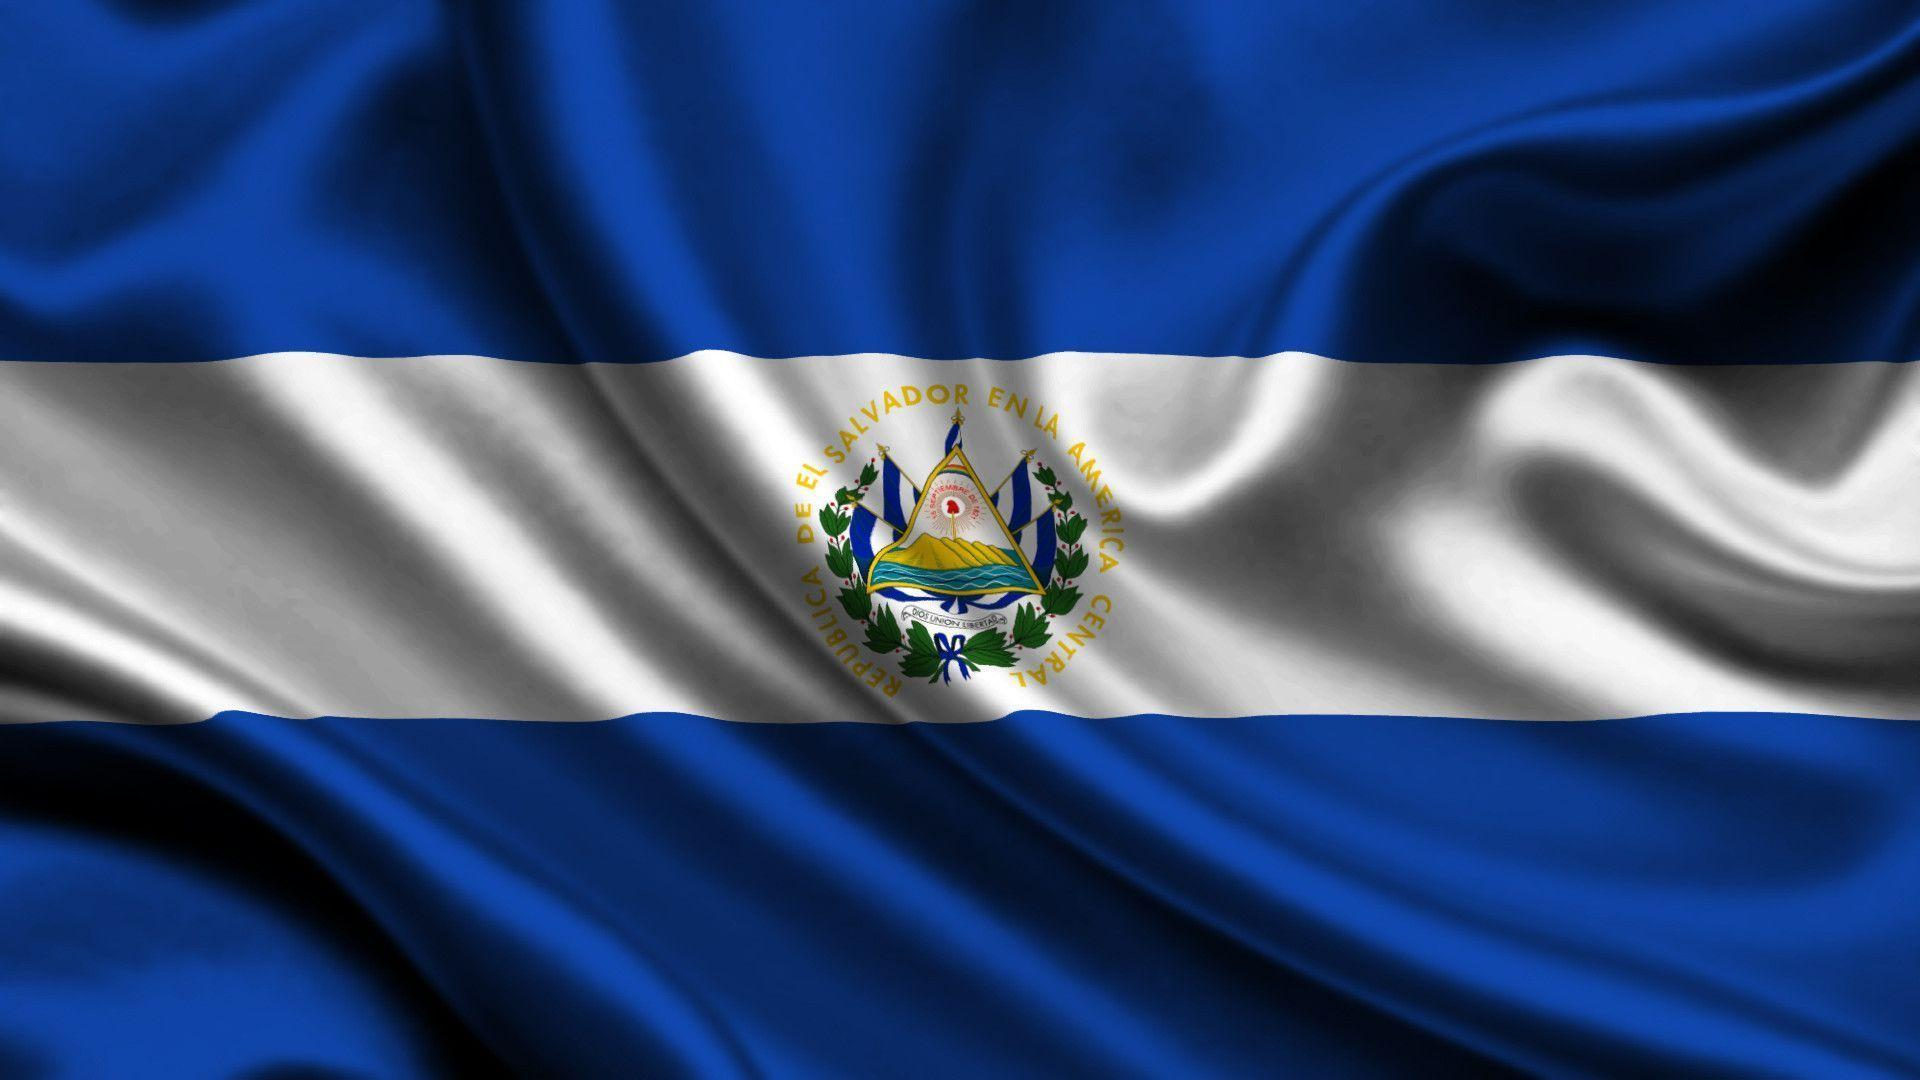 San Salvador Wallpapers and Background Images   stmednet 1920x1080